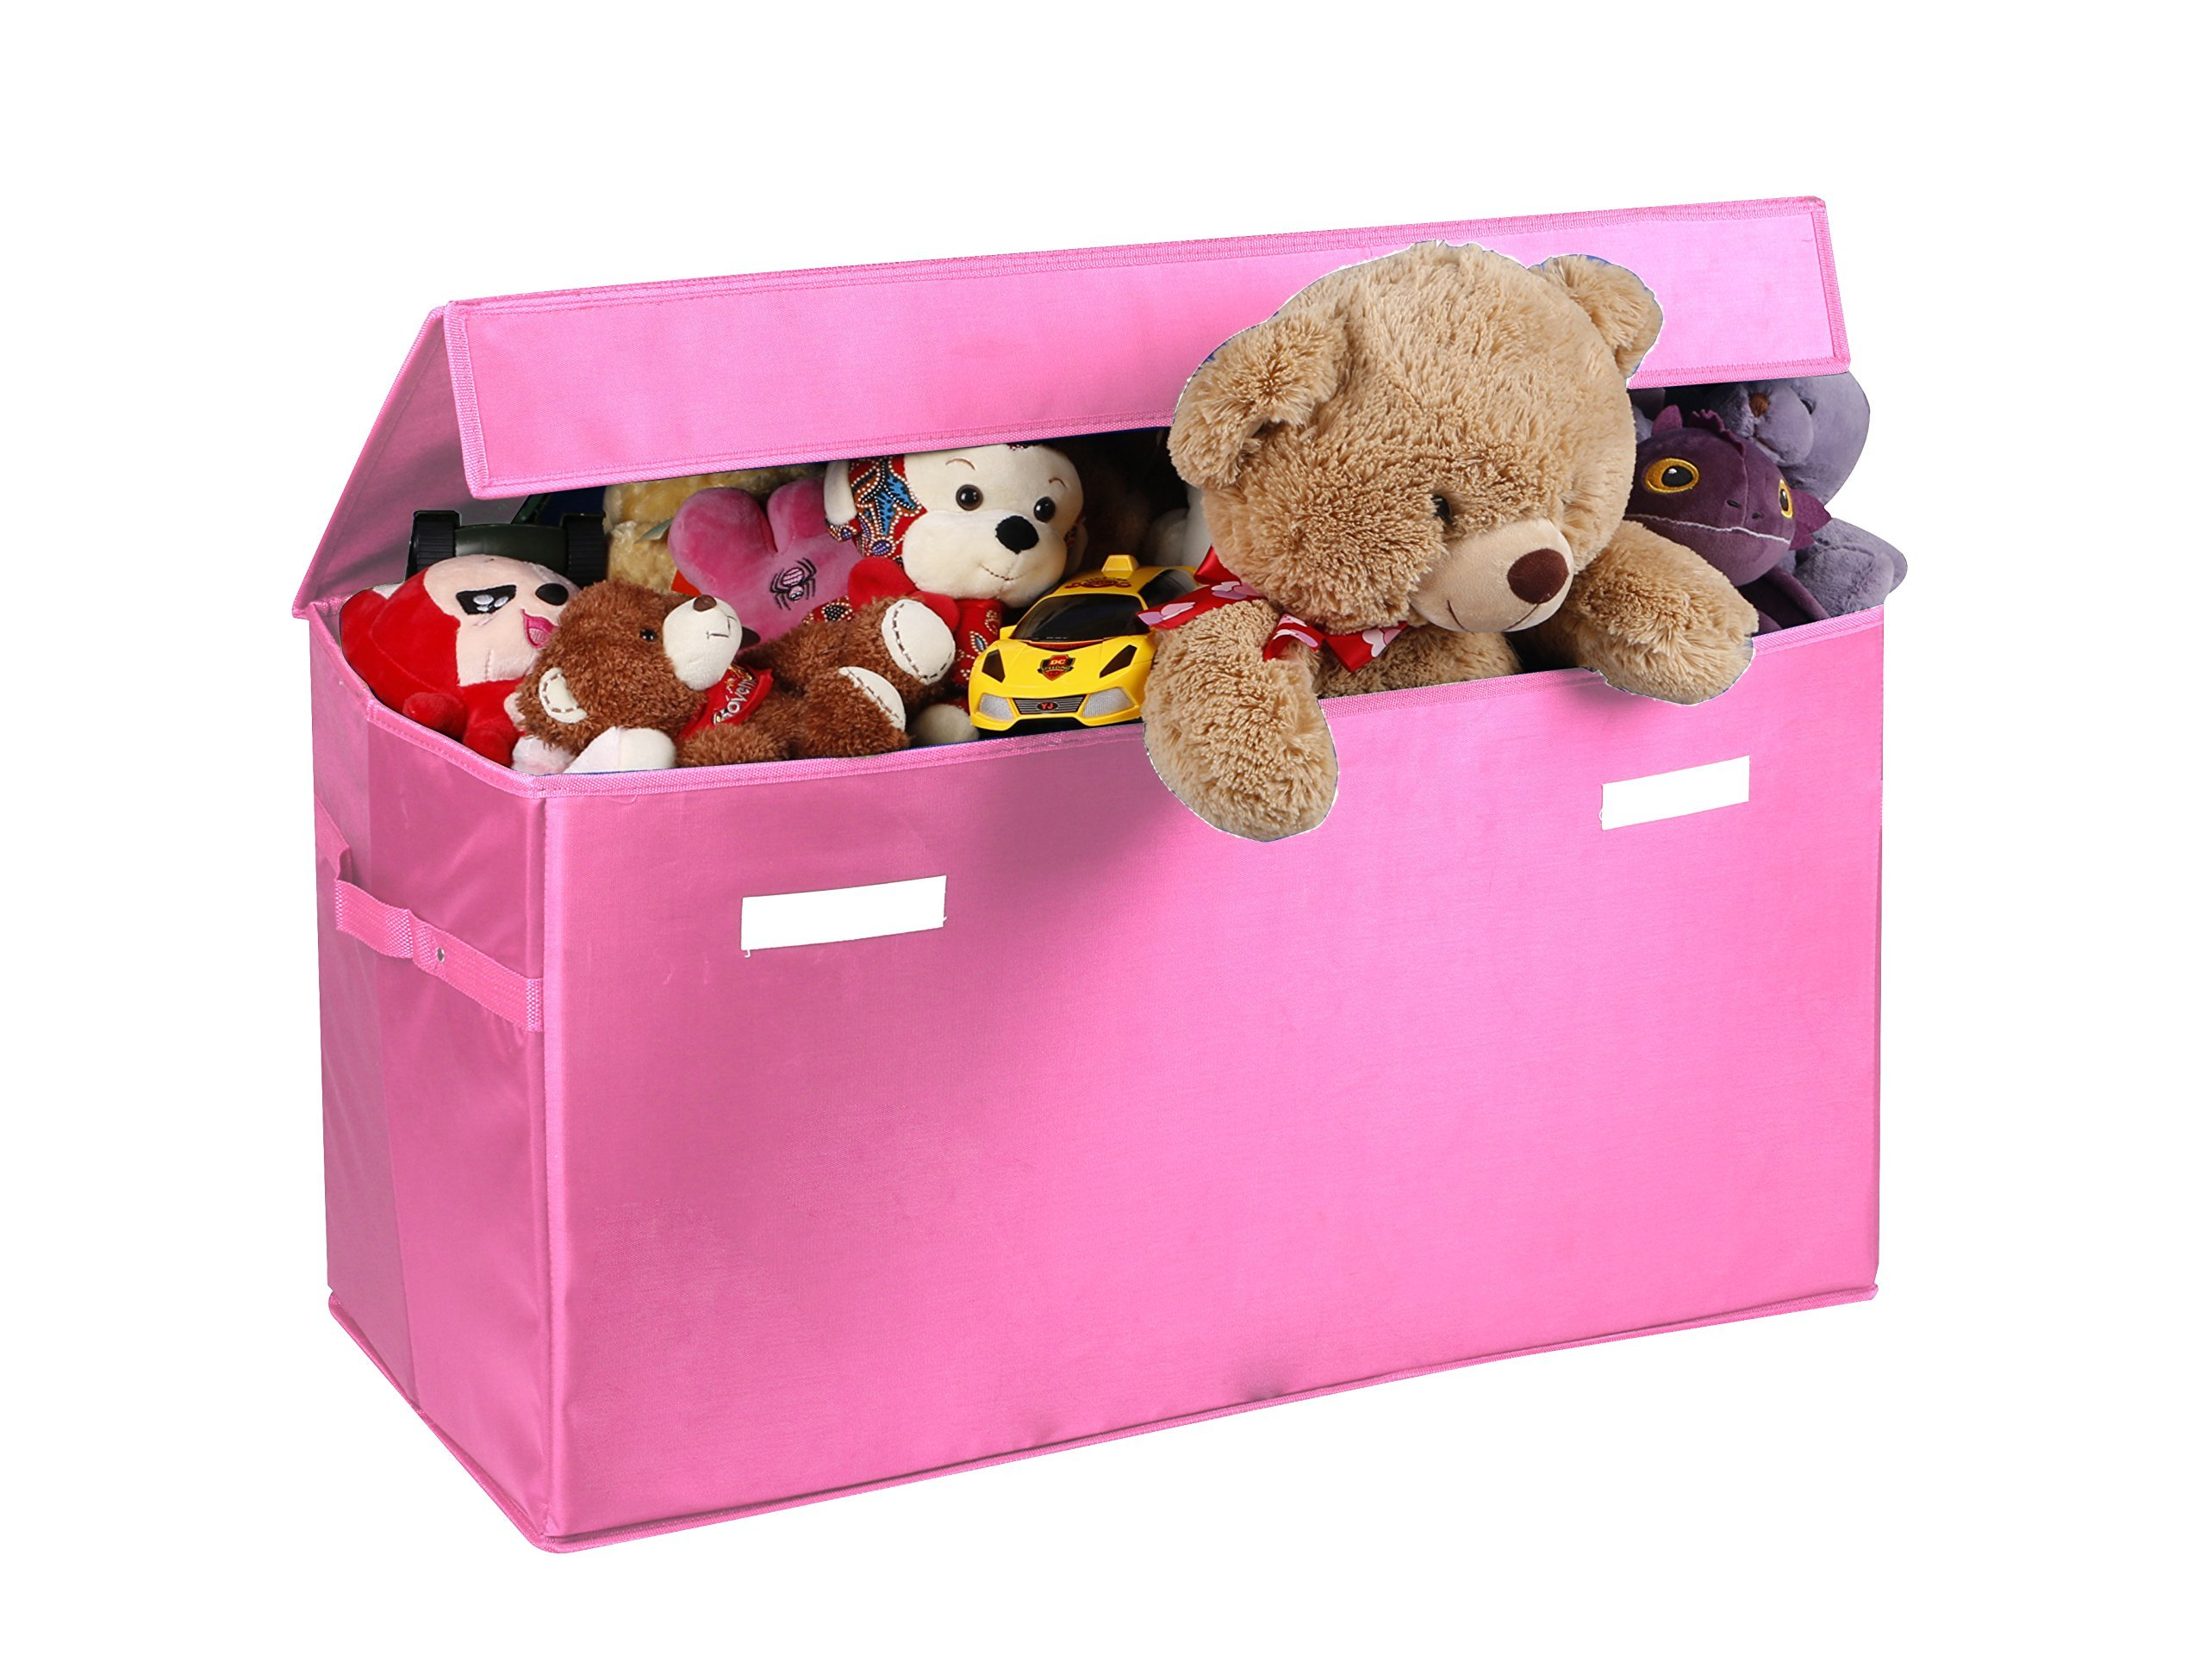 Childrens Jumbo Bedroom Room Tidy Toy Storage Chest Box Trunk: Amazon.com: Strong Collapsible Toy Chest Box [Largest